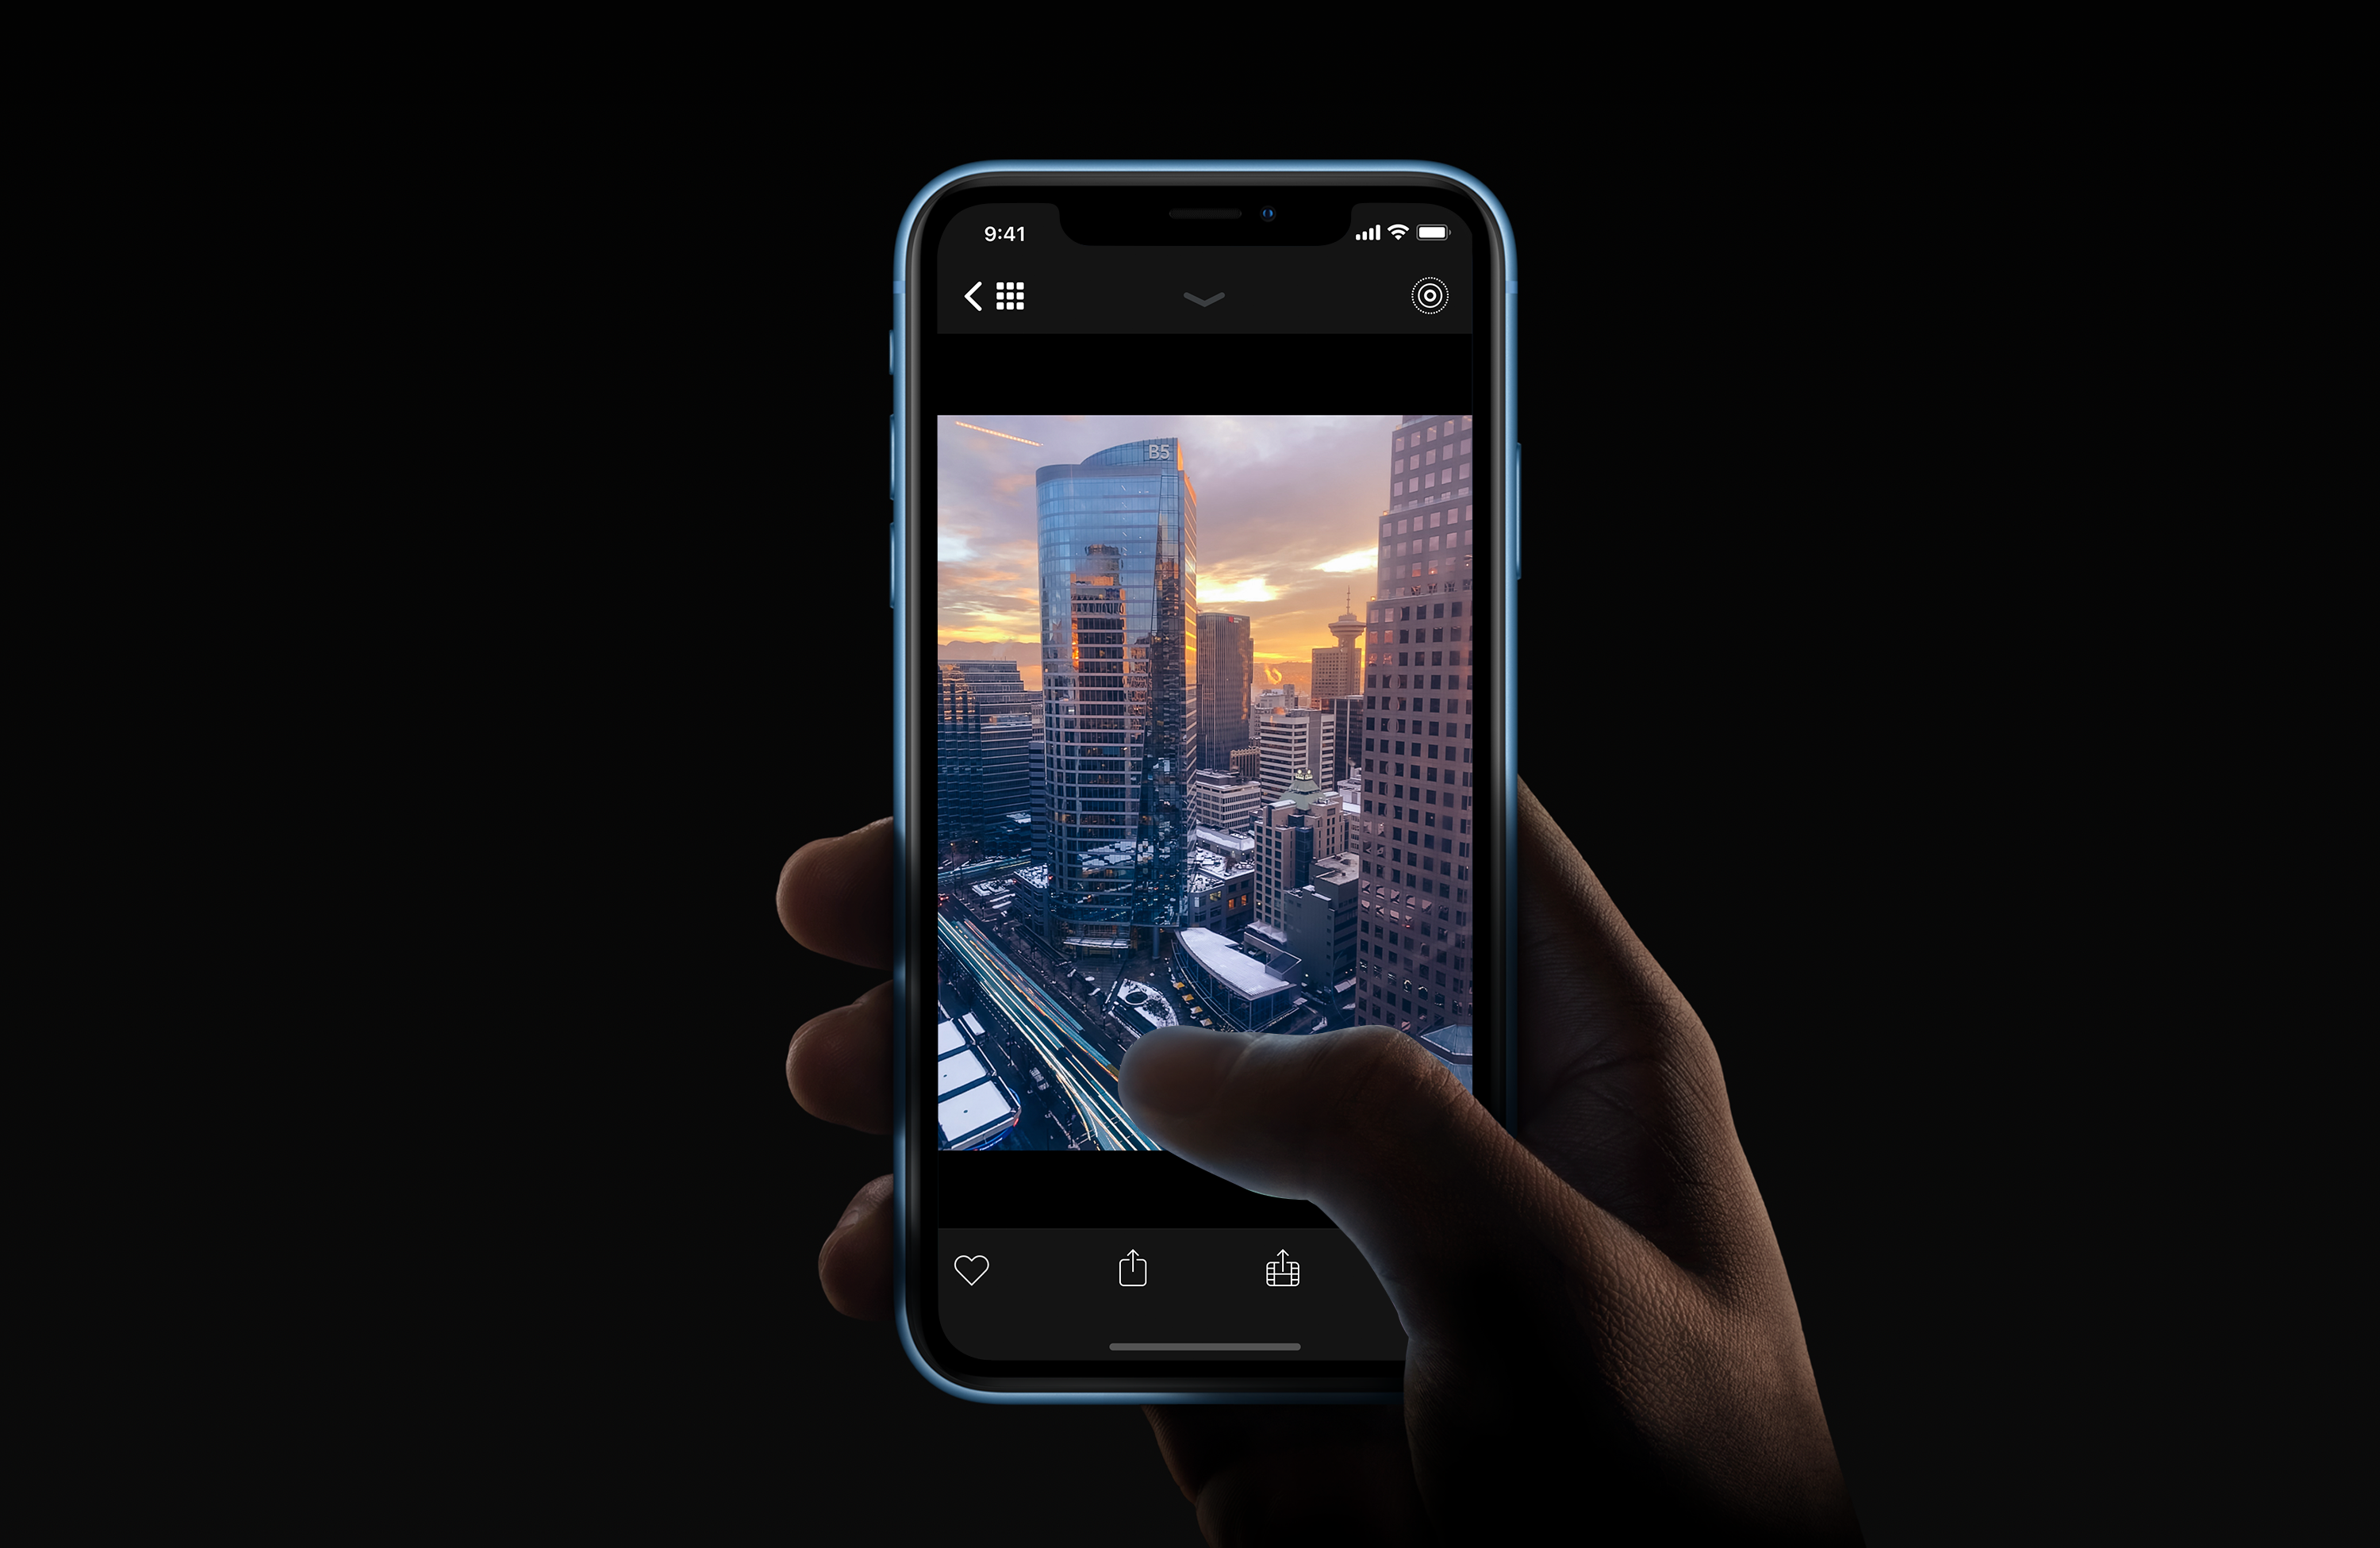 Spectre is a new iOS camera app that uses AI to create stunning long